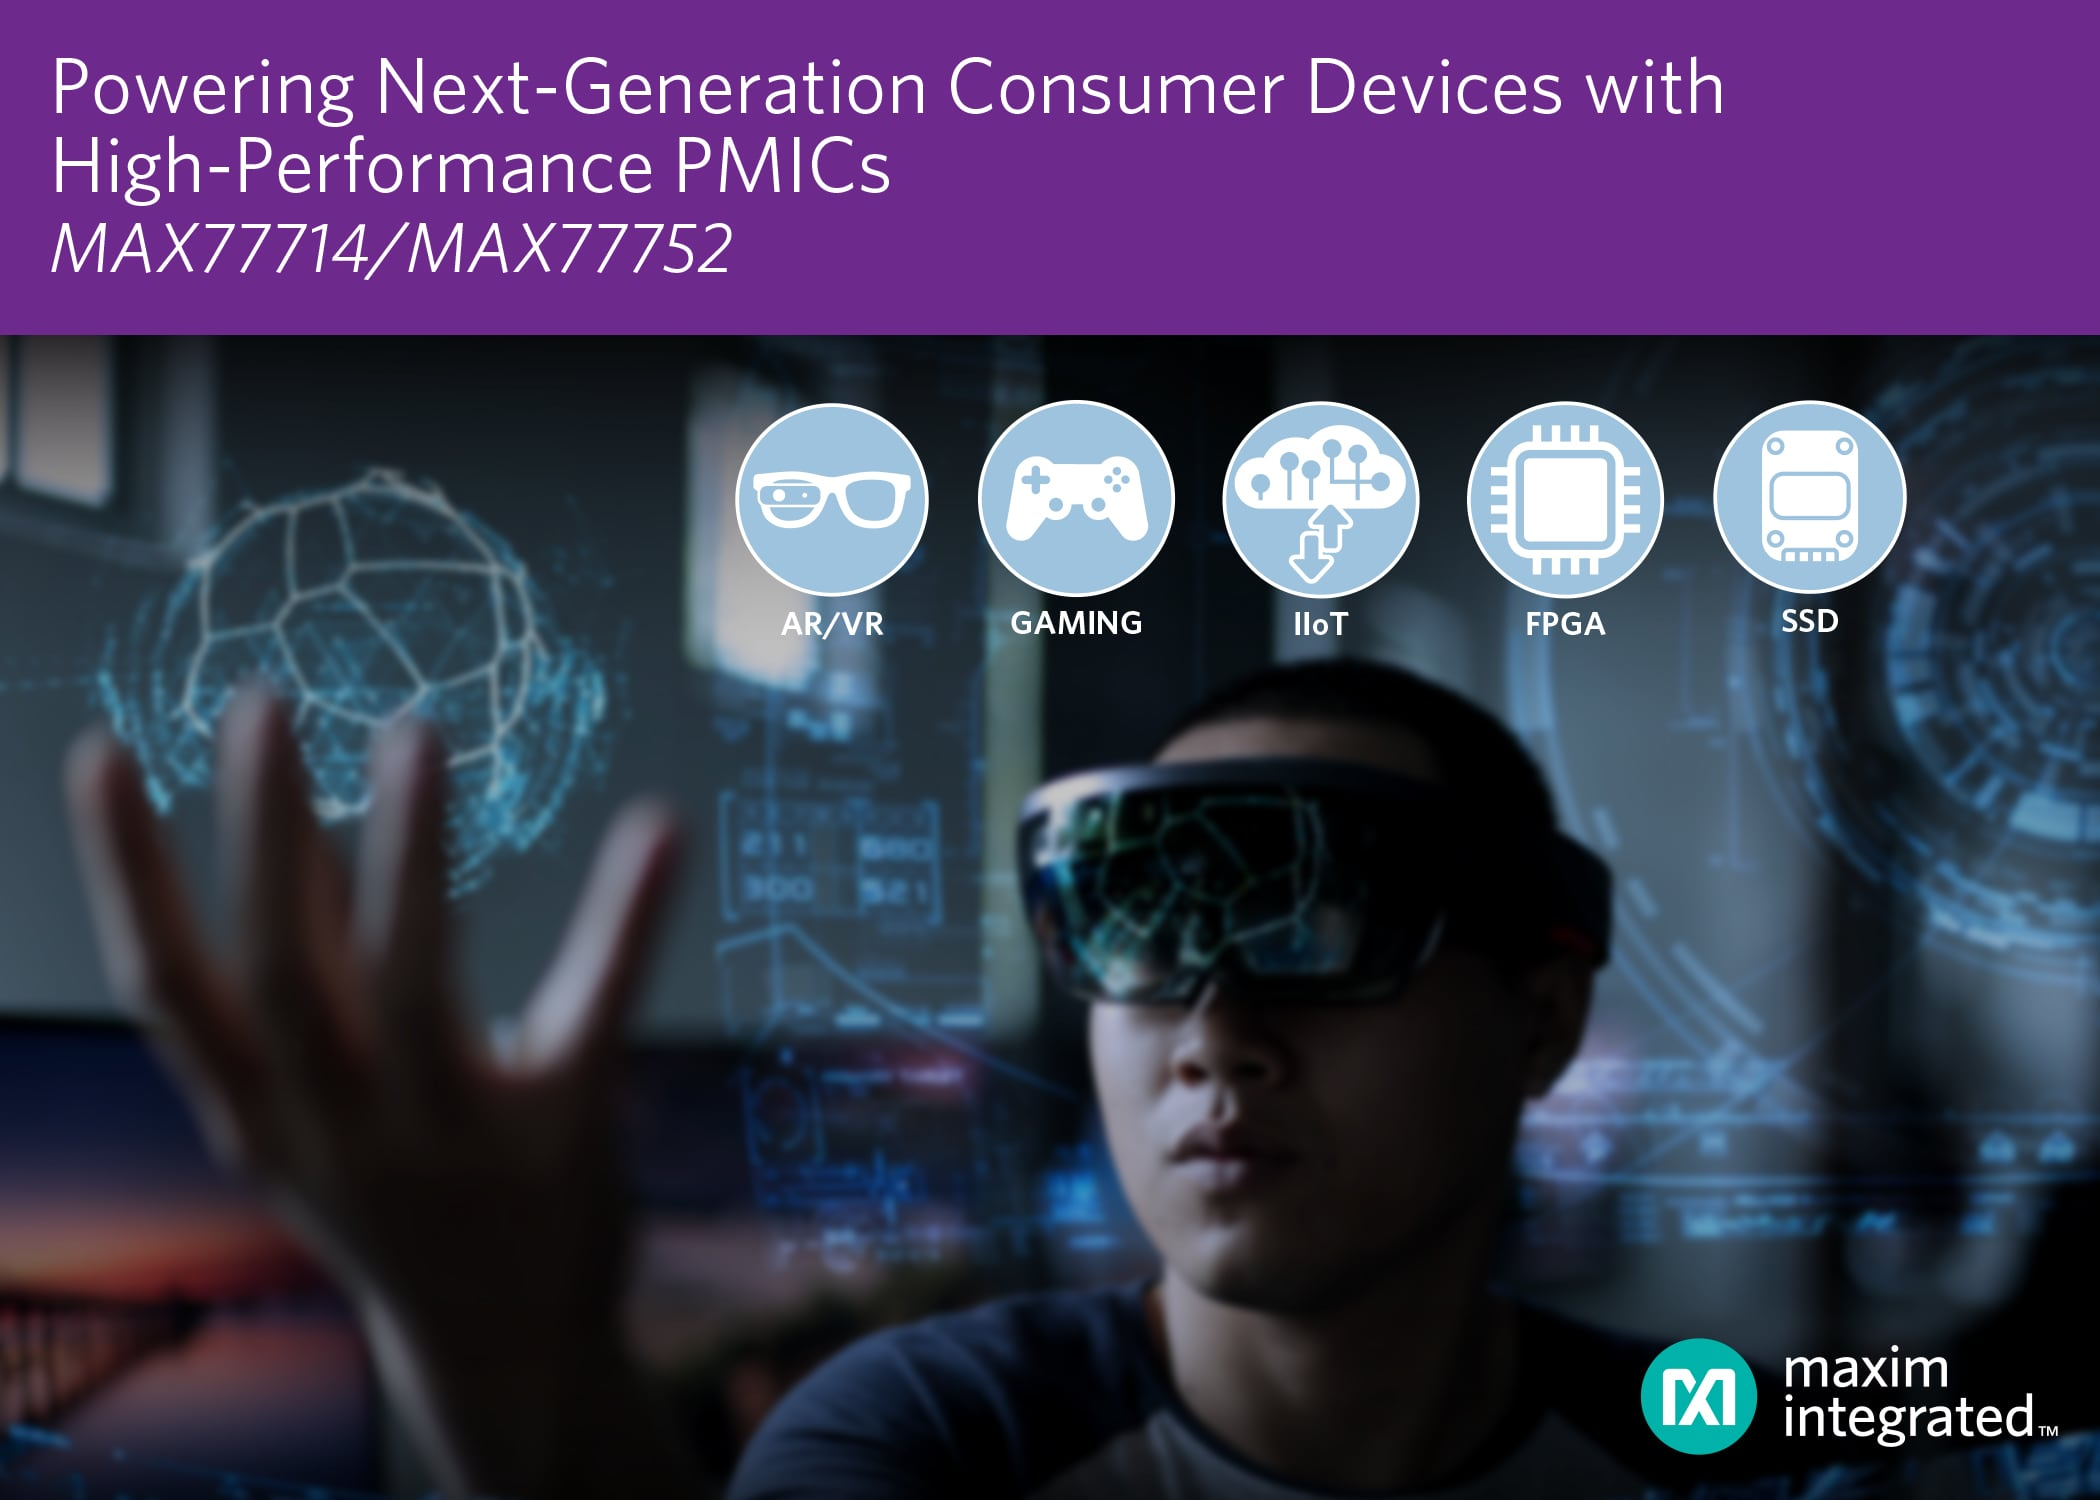 PMICs Power Next-Generation Consumer Applications